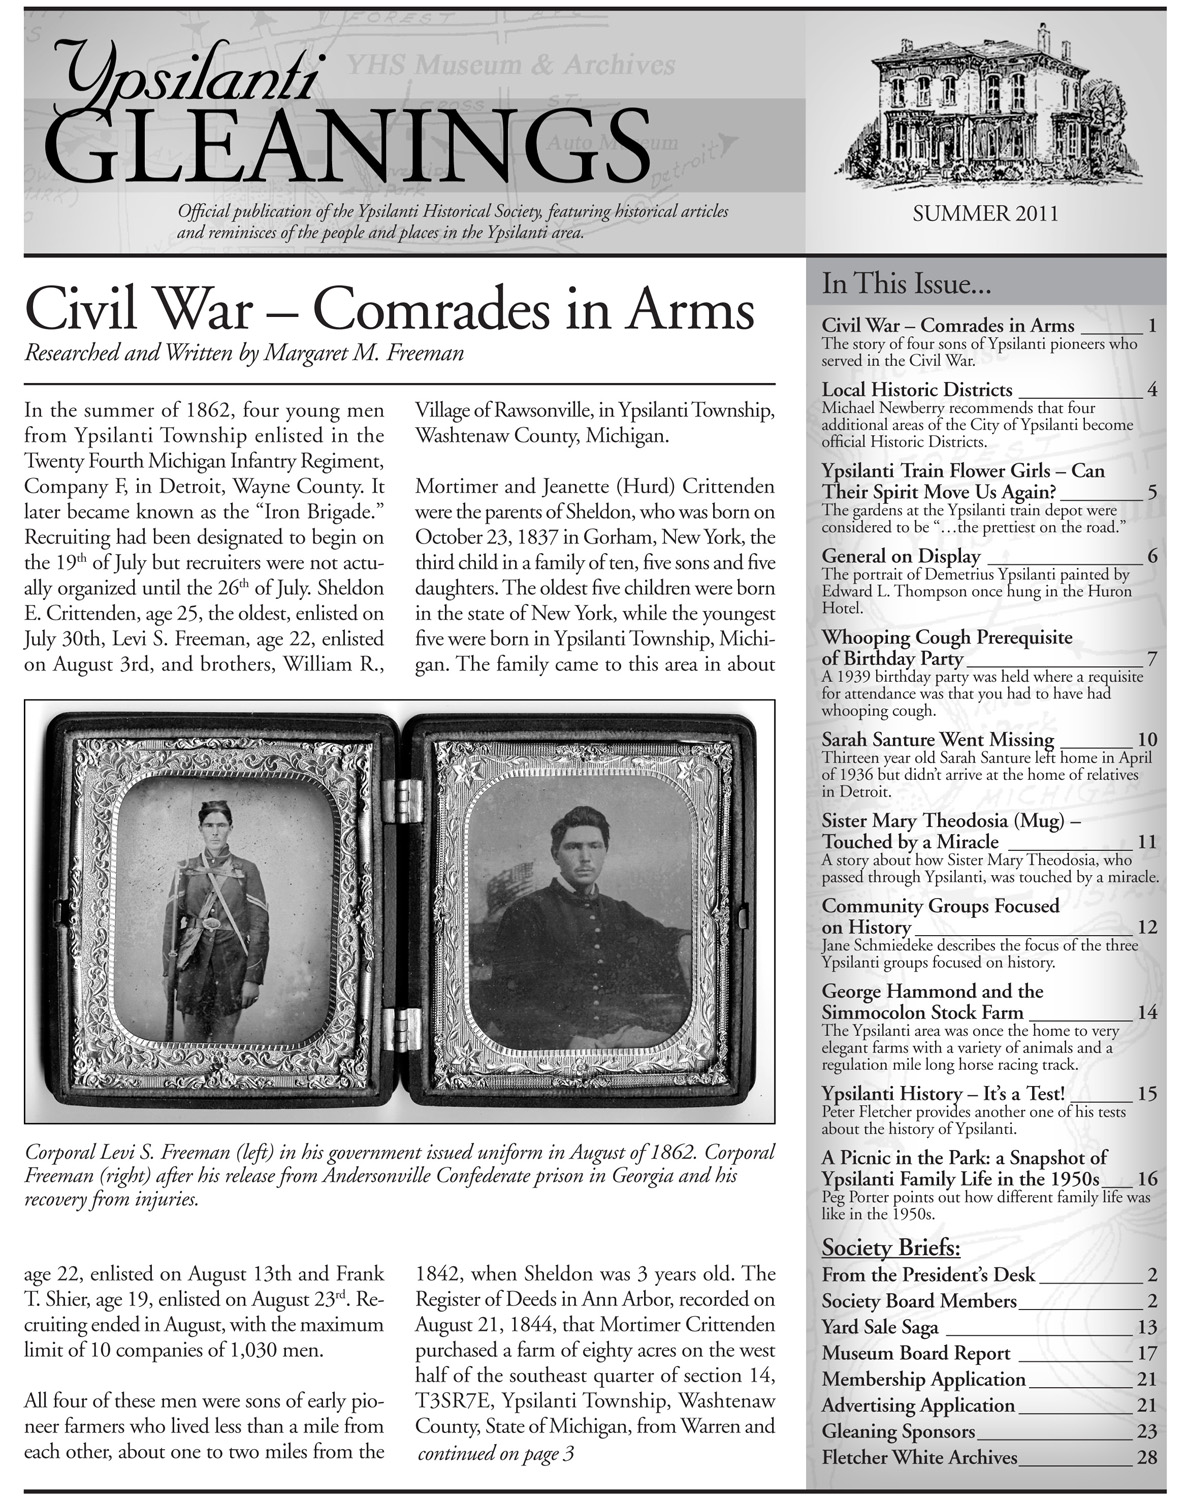 Civil War - Comrades in Arms image